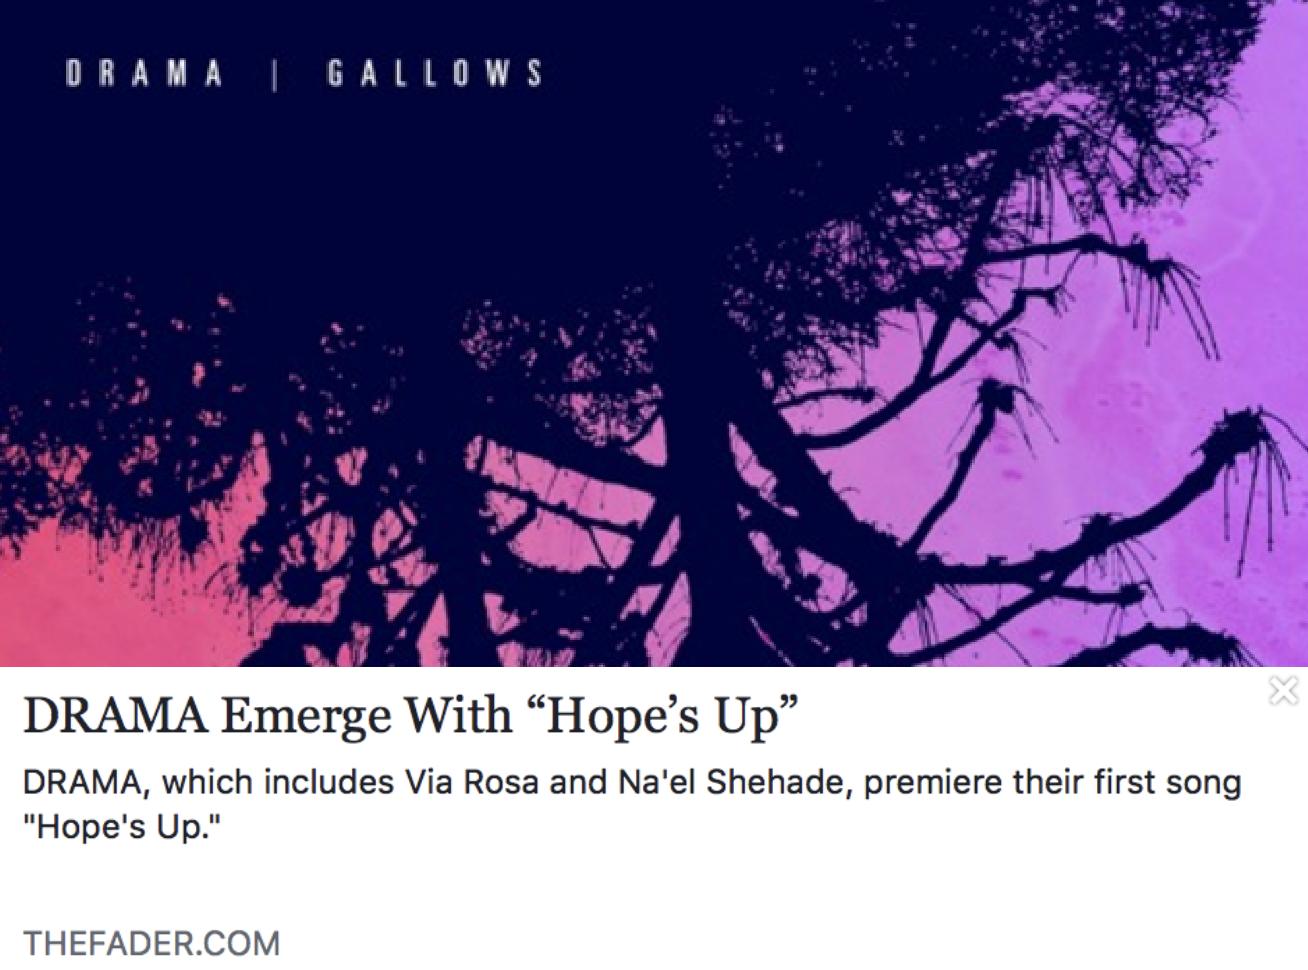 """DRAMA emerge with """"Hope's Up"""" - THE FADER"""